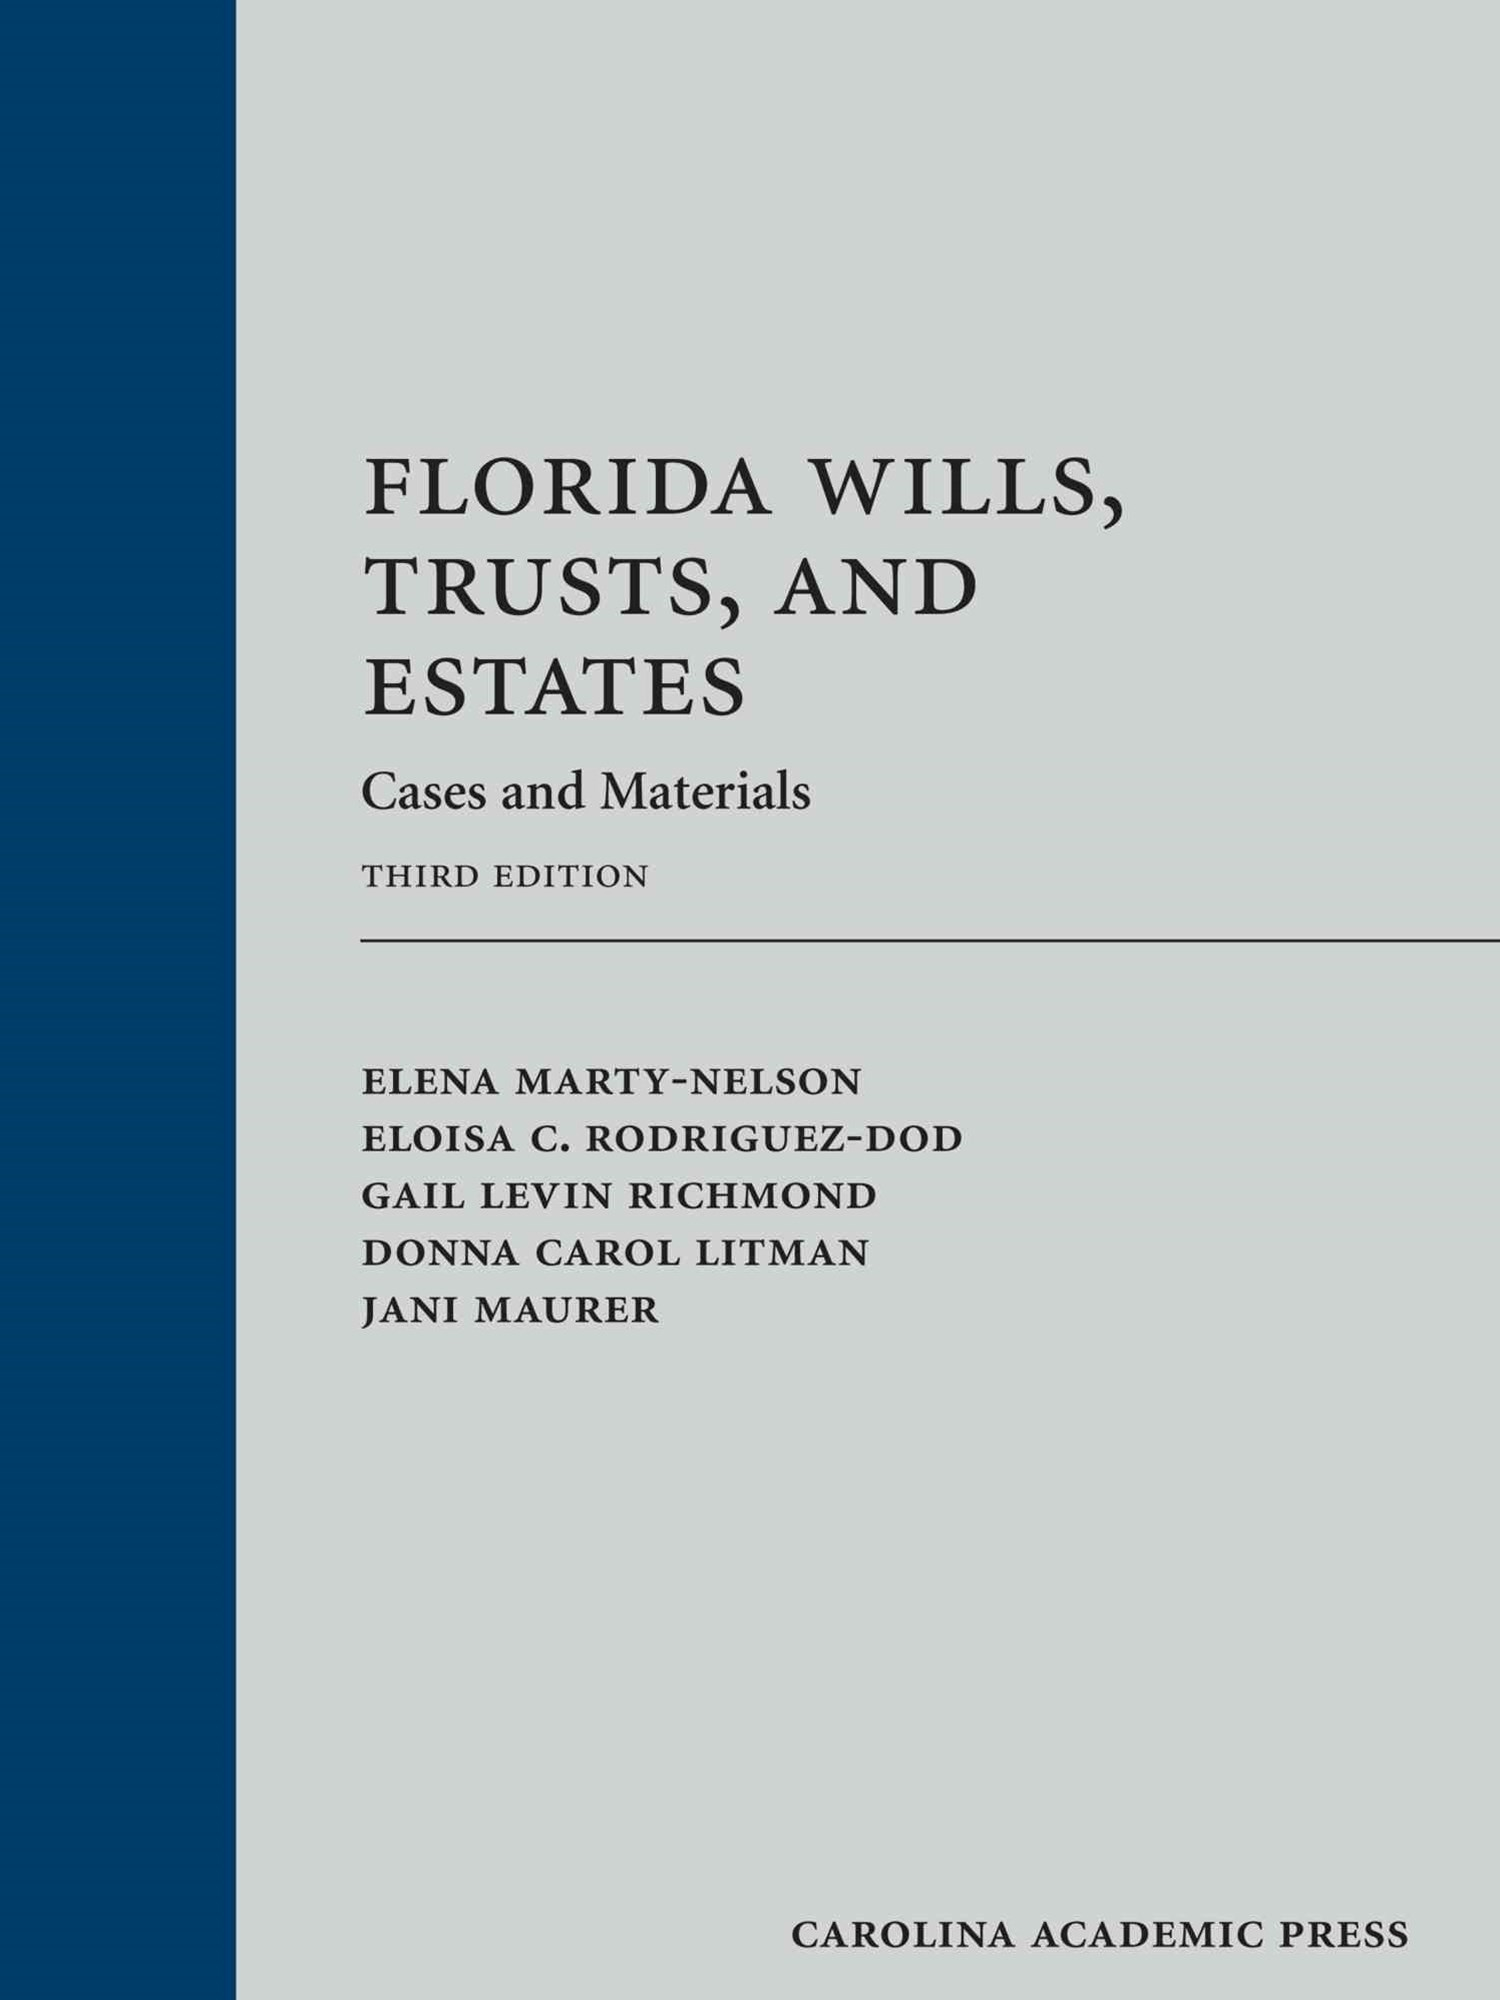 Florida Wills, Trusts, and Estates